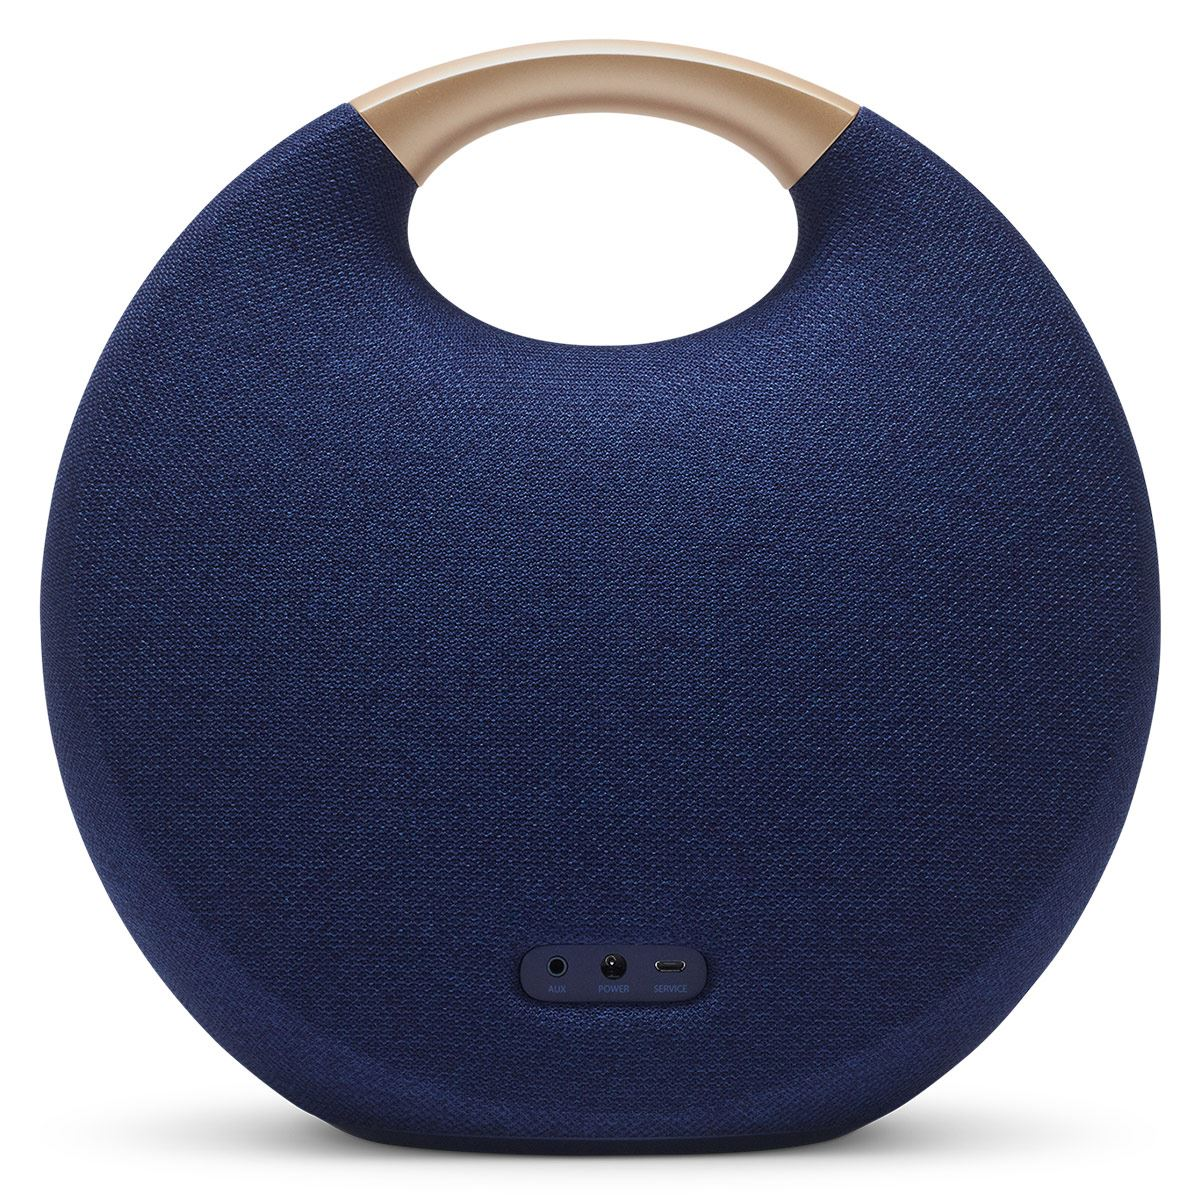 Bocina Onyx Studio 5 Bluetooth Azul Harman Kardon